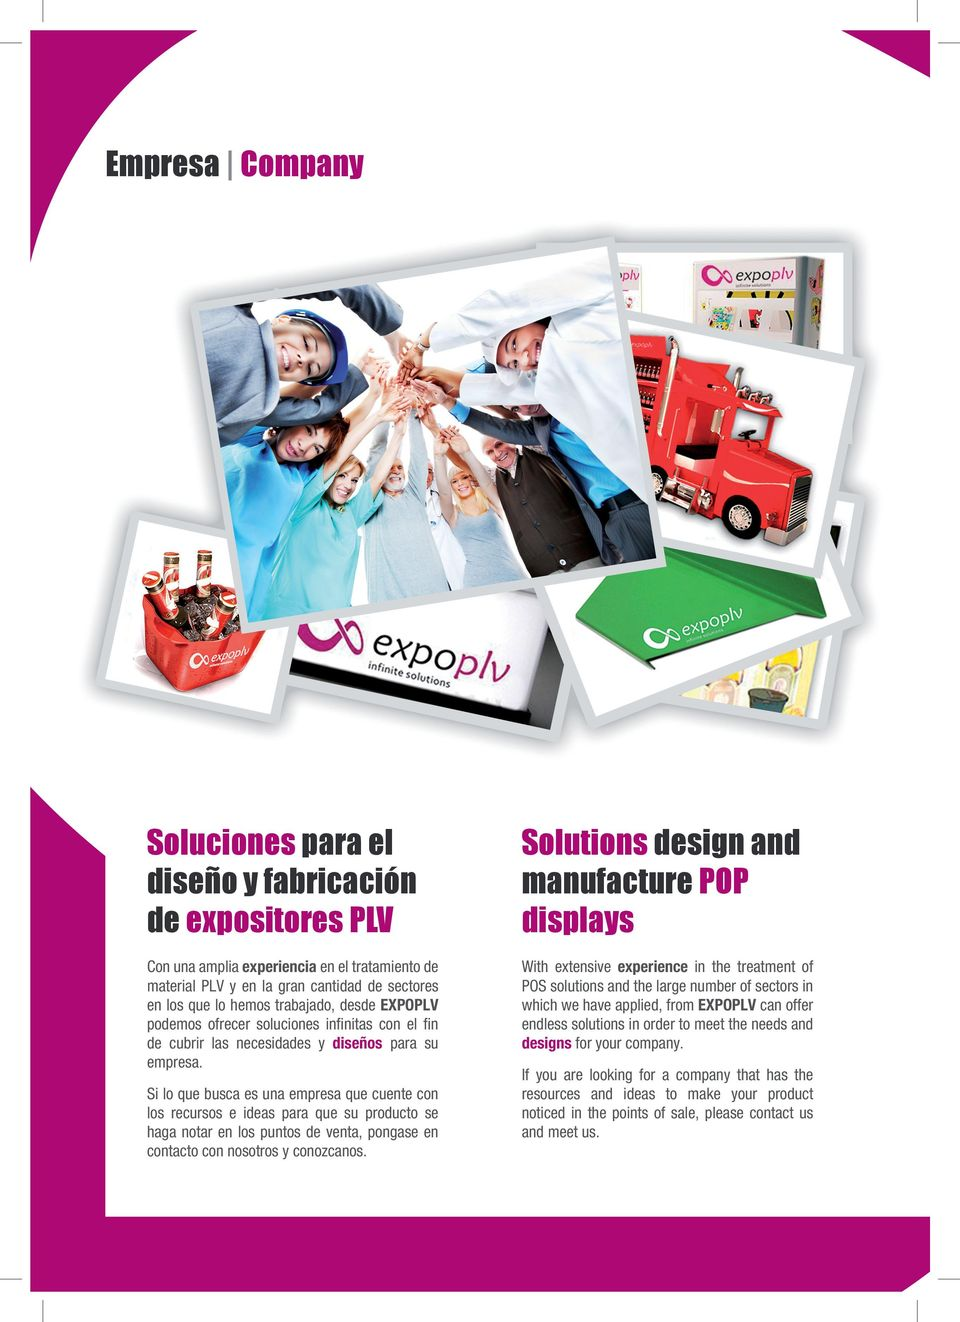 With extensive experience in the treatment of POS solutions and the large number of sectors in which we have applied, from EXPOPLV can offer endless solutions in order to meet the needs and designs